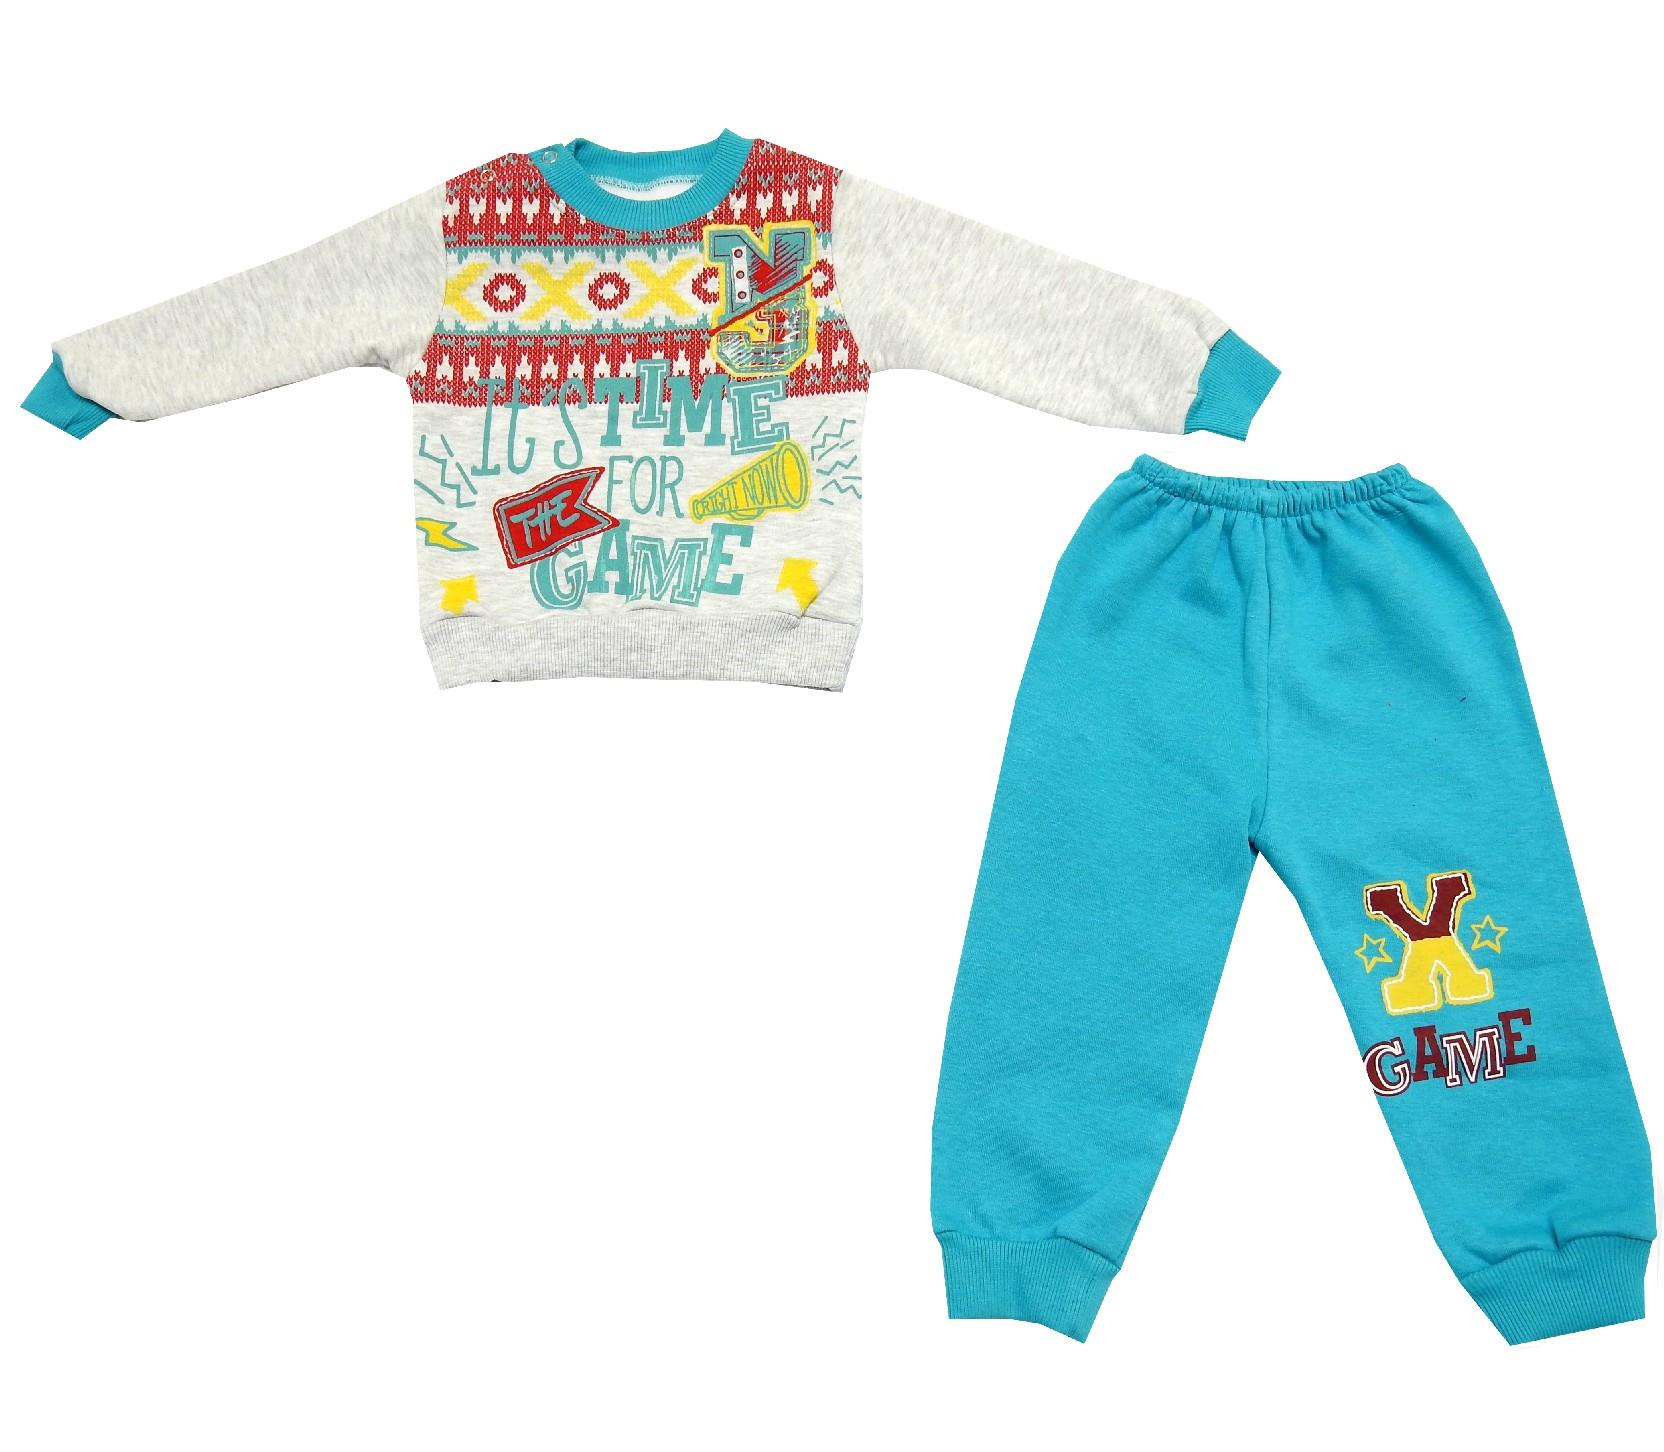 GAME PRINTED EMBROIDERELY DESIGNED SWEATSHIRT AND TROUSER DOUBLE SET FOR BOY (1-2-3 AGE)